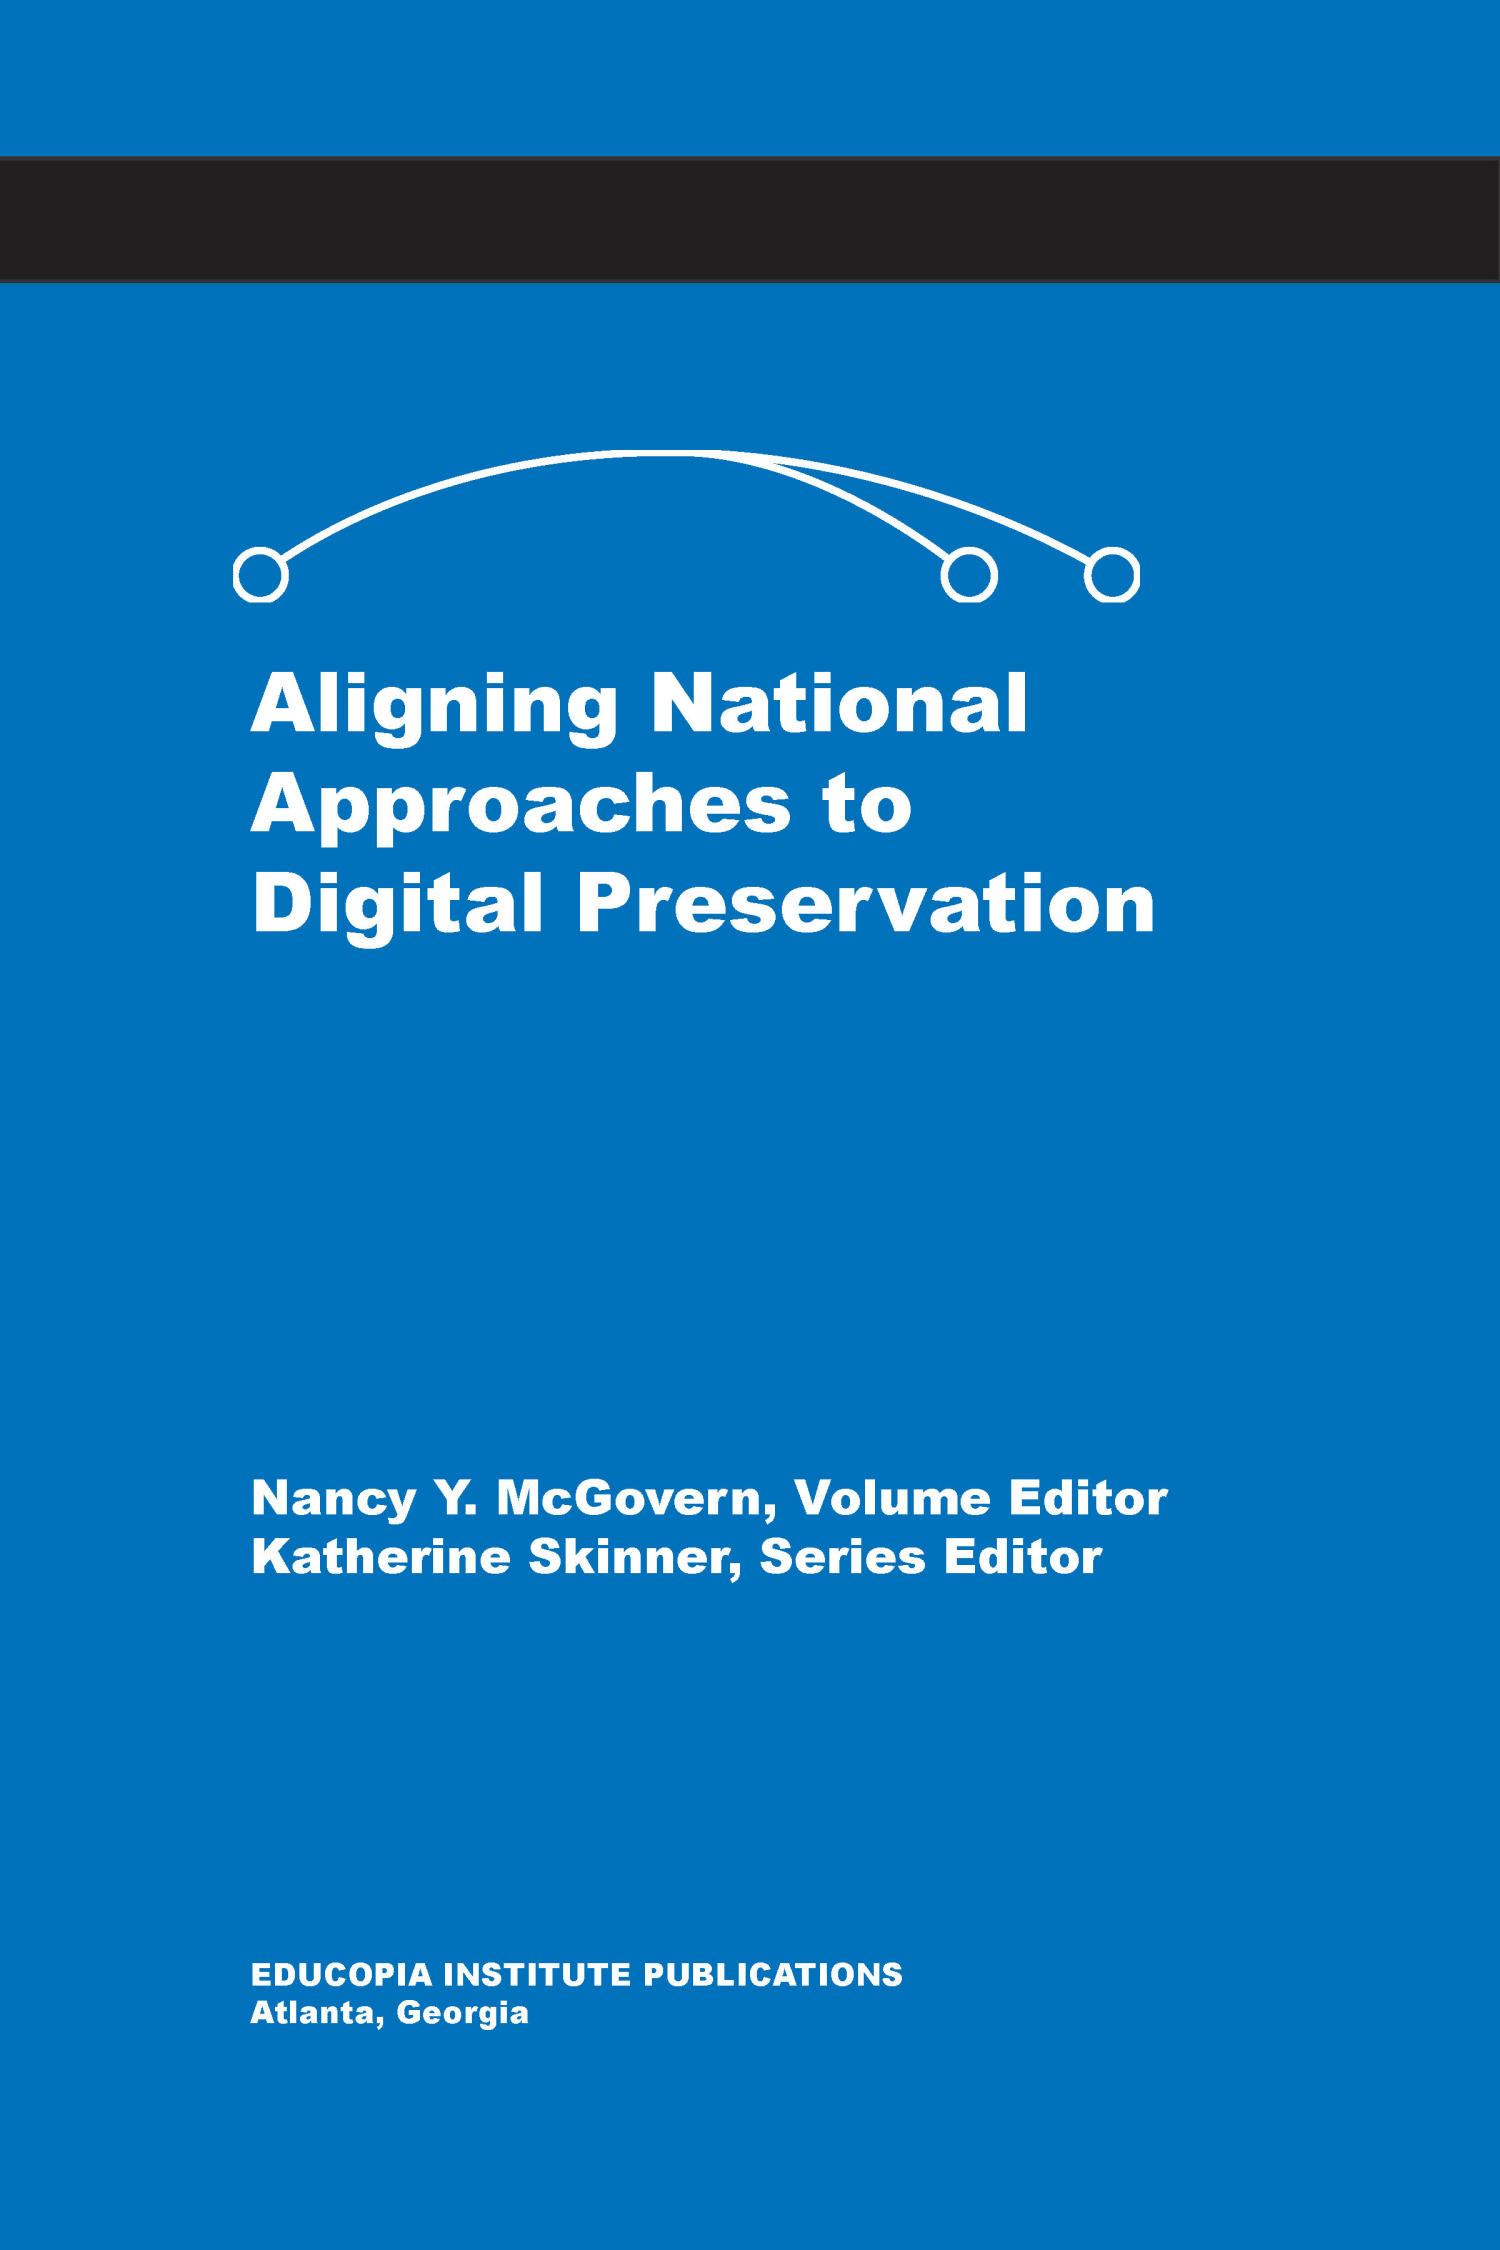 Aligning National Approaches to Digital Preservation                                                                                                      Front Cover